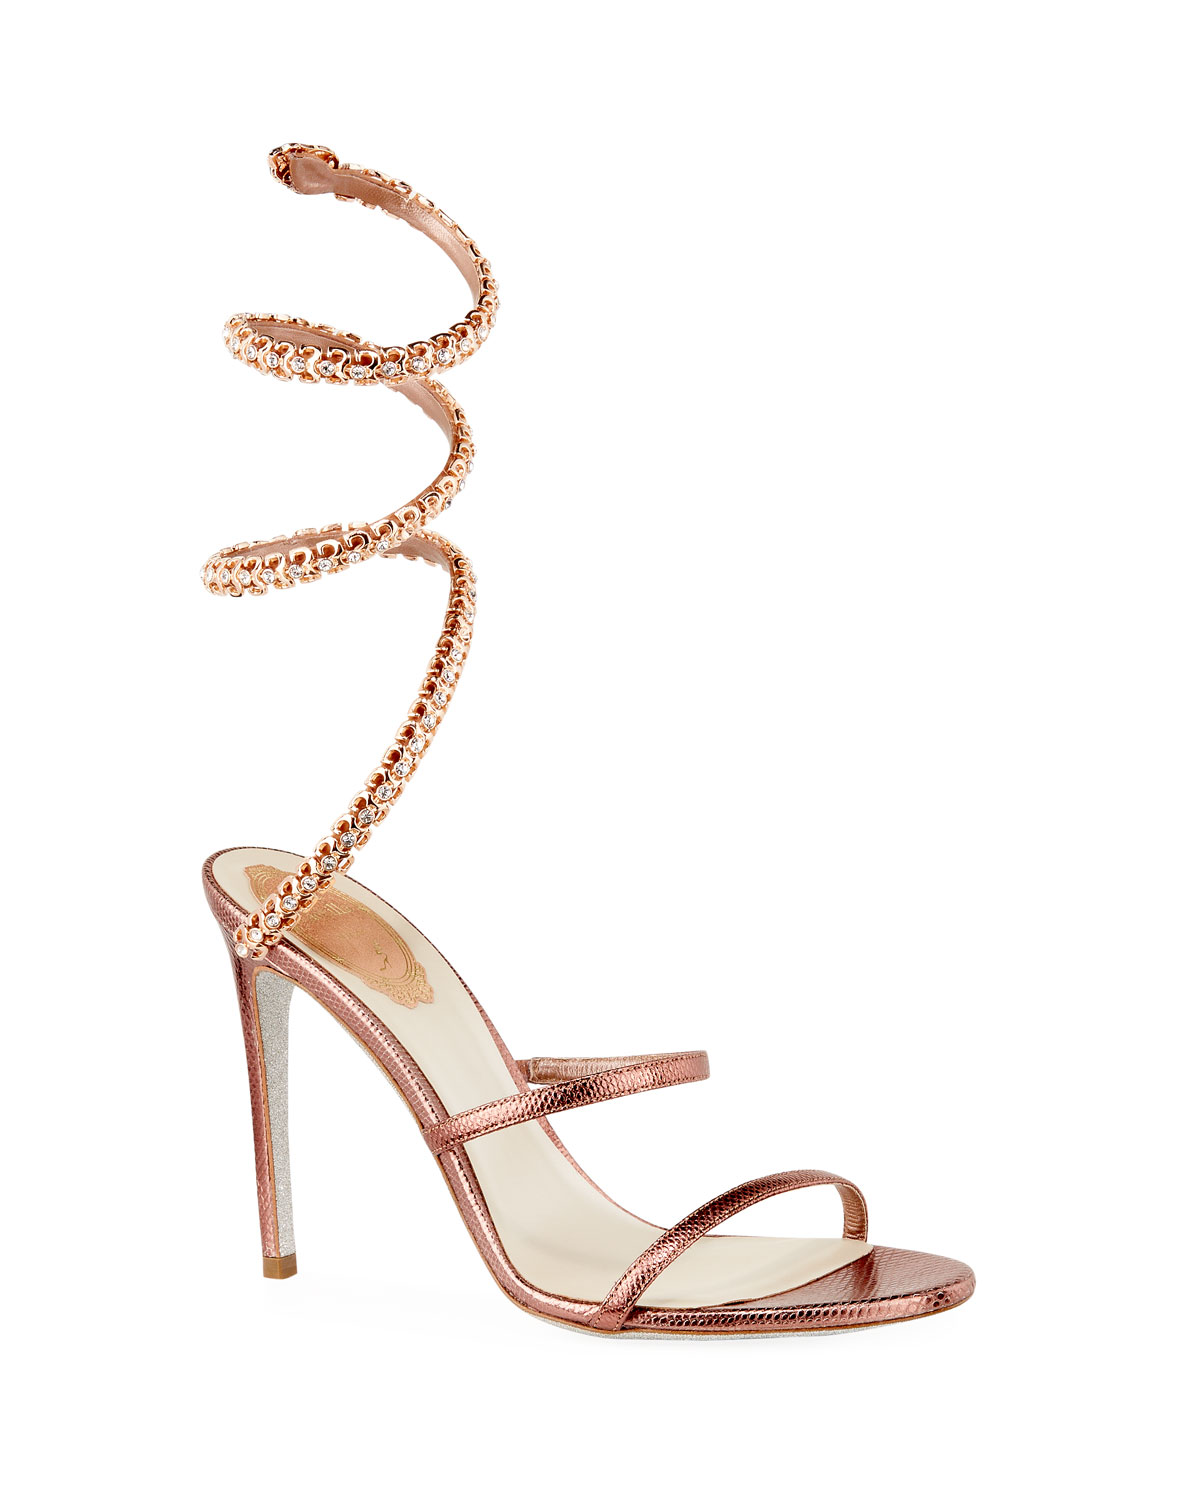 Snake-Coil Lizard Sandals with Crystal Detail